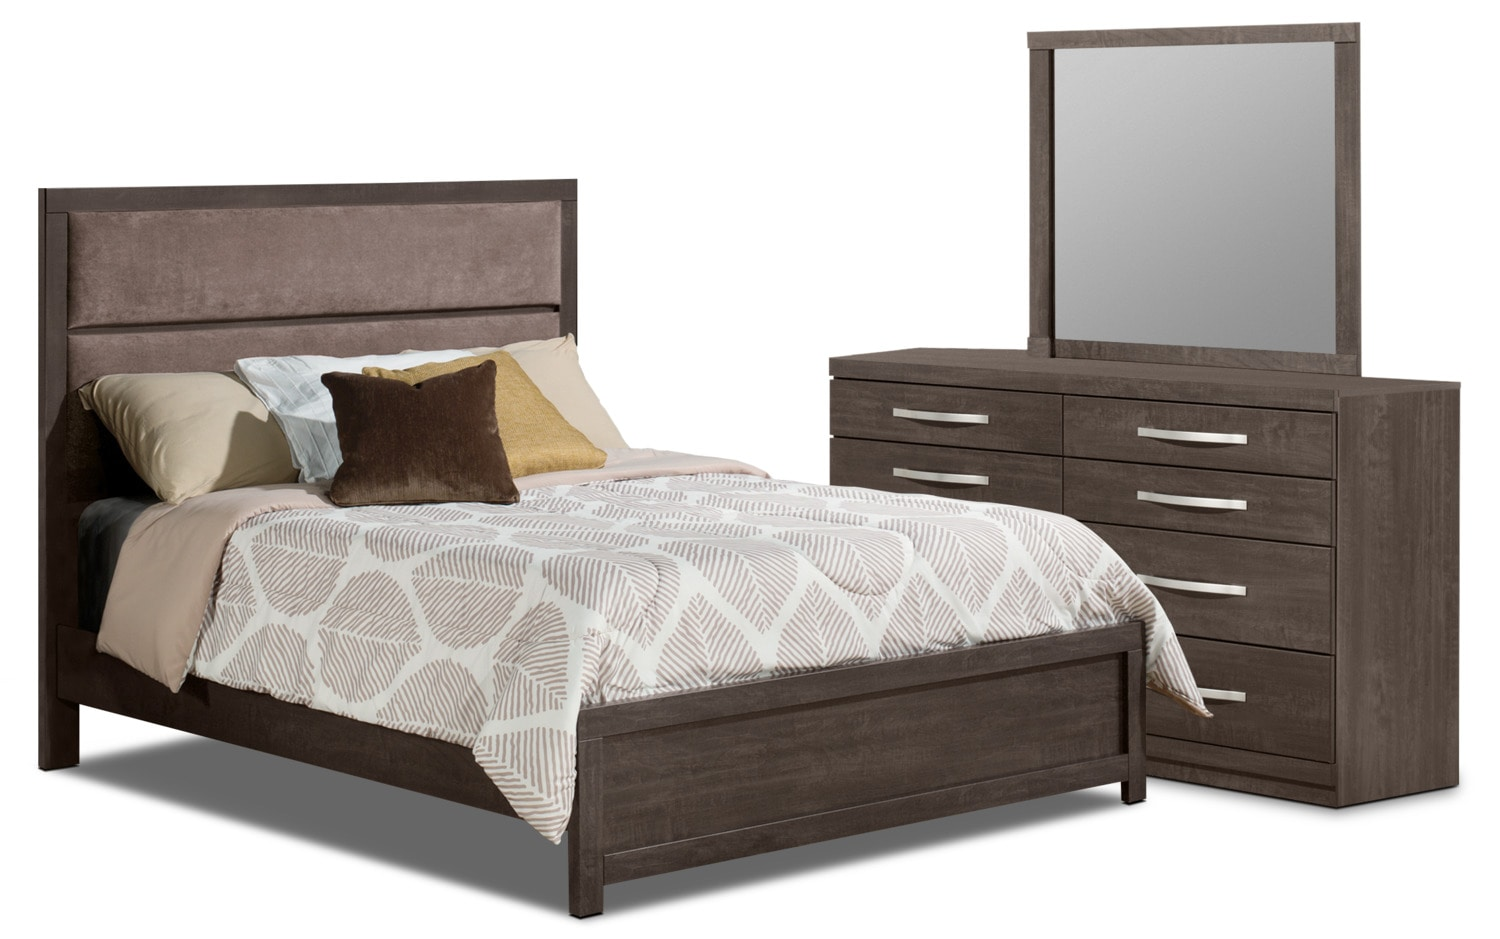 Willowdale Queen 5-Piece Bedroom Package